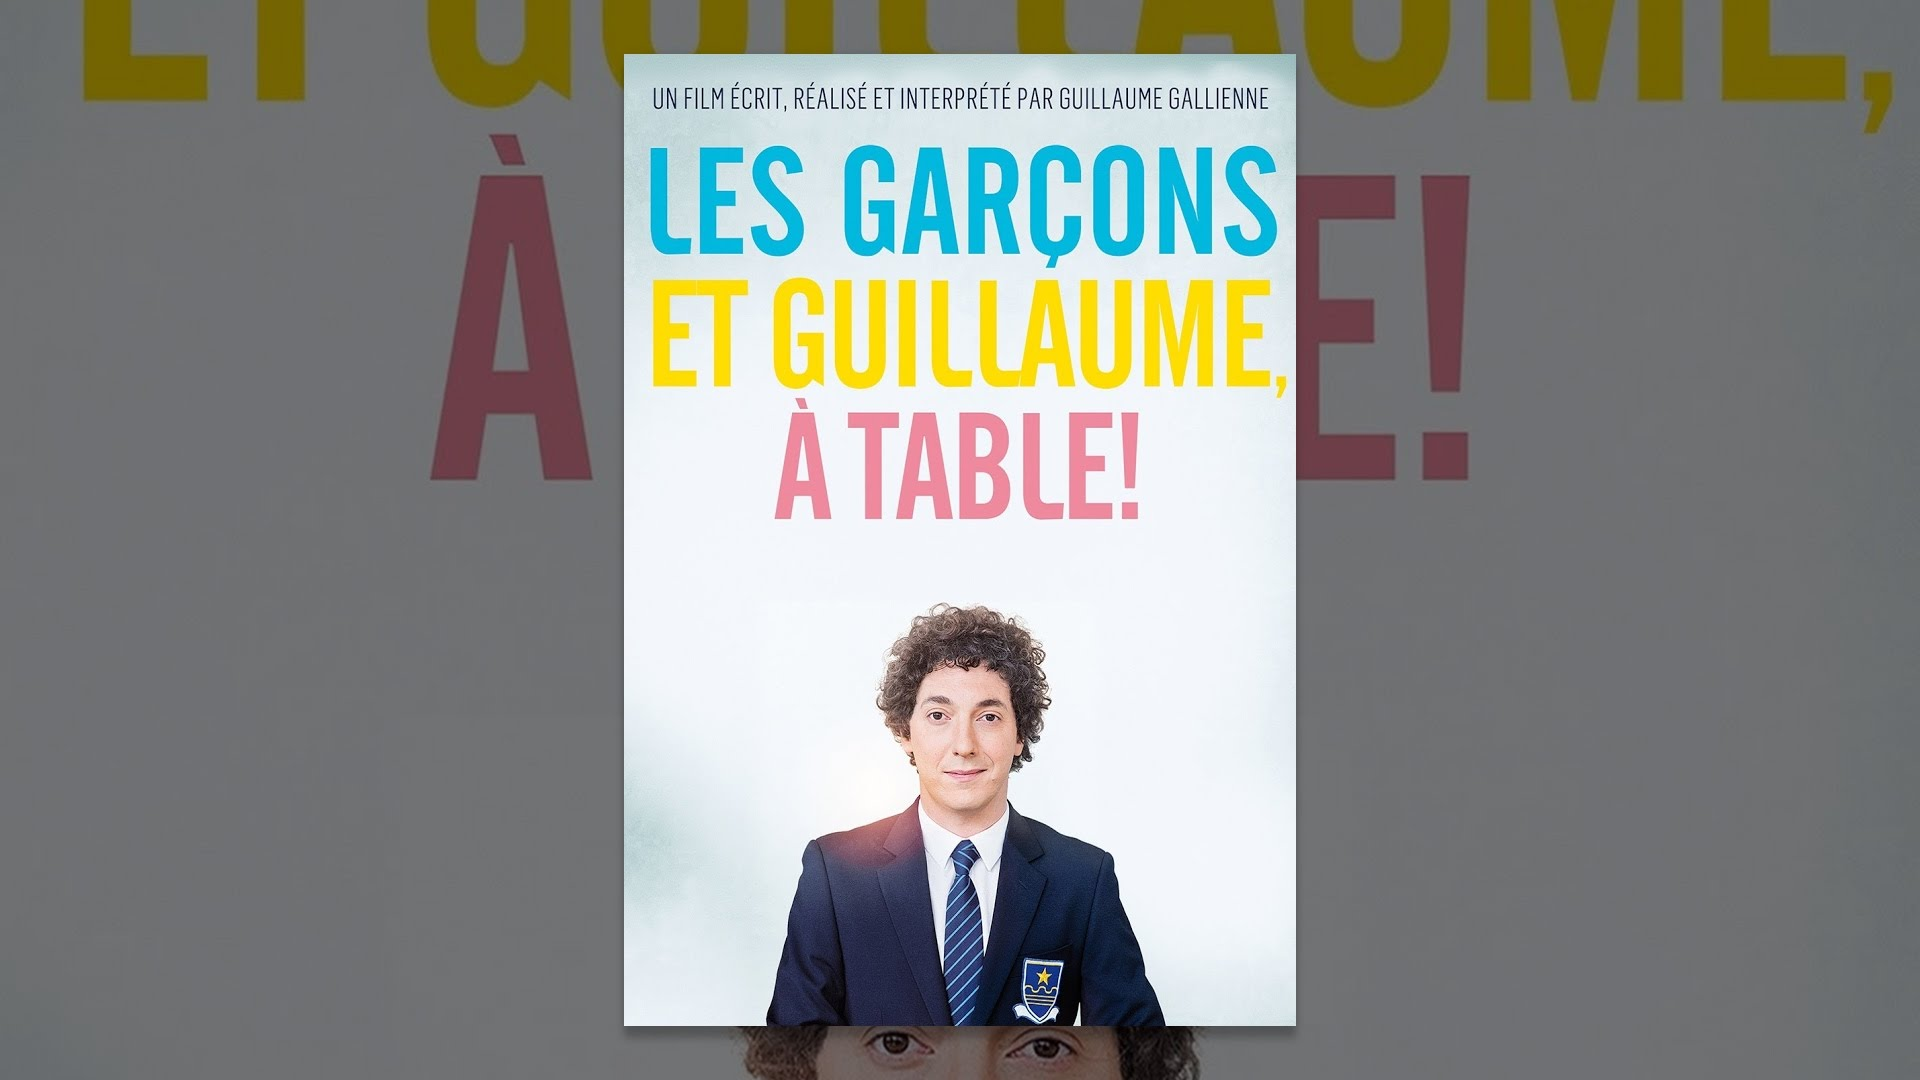 Les garcons et guillaume a table youtube - Les garcons et guillaume a table bande annonce ...